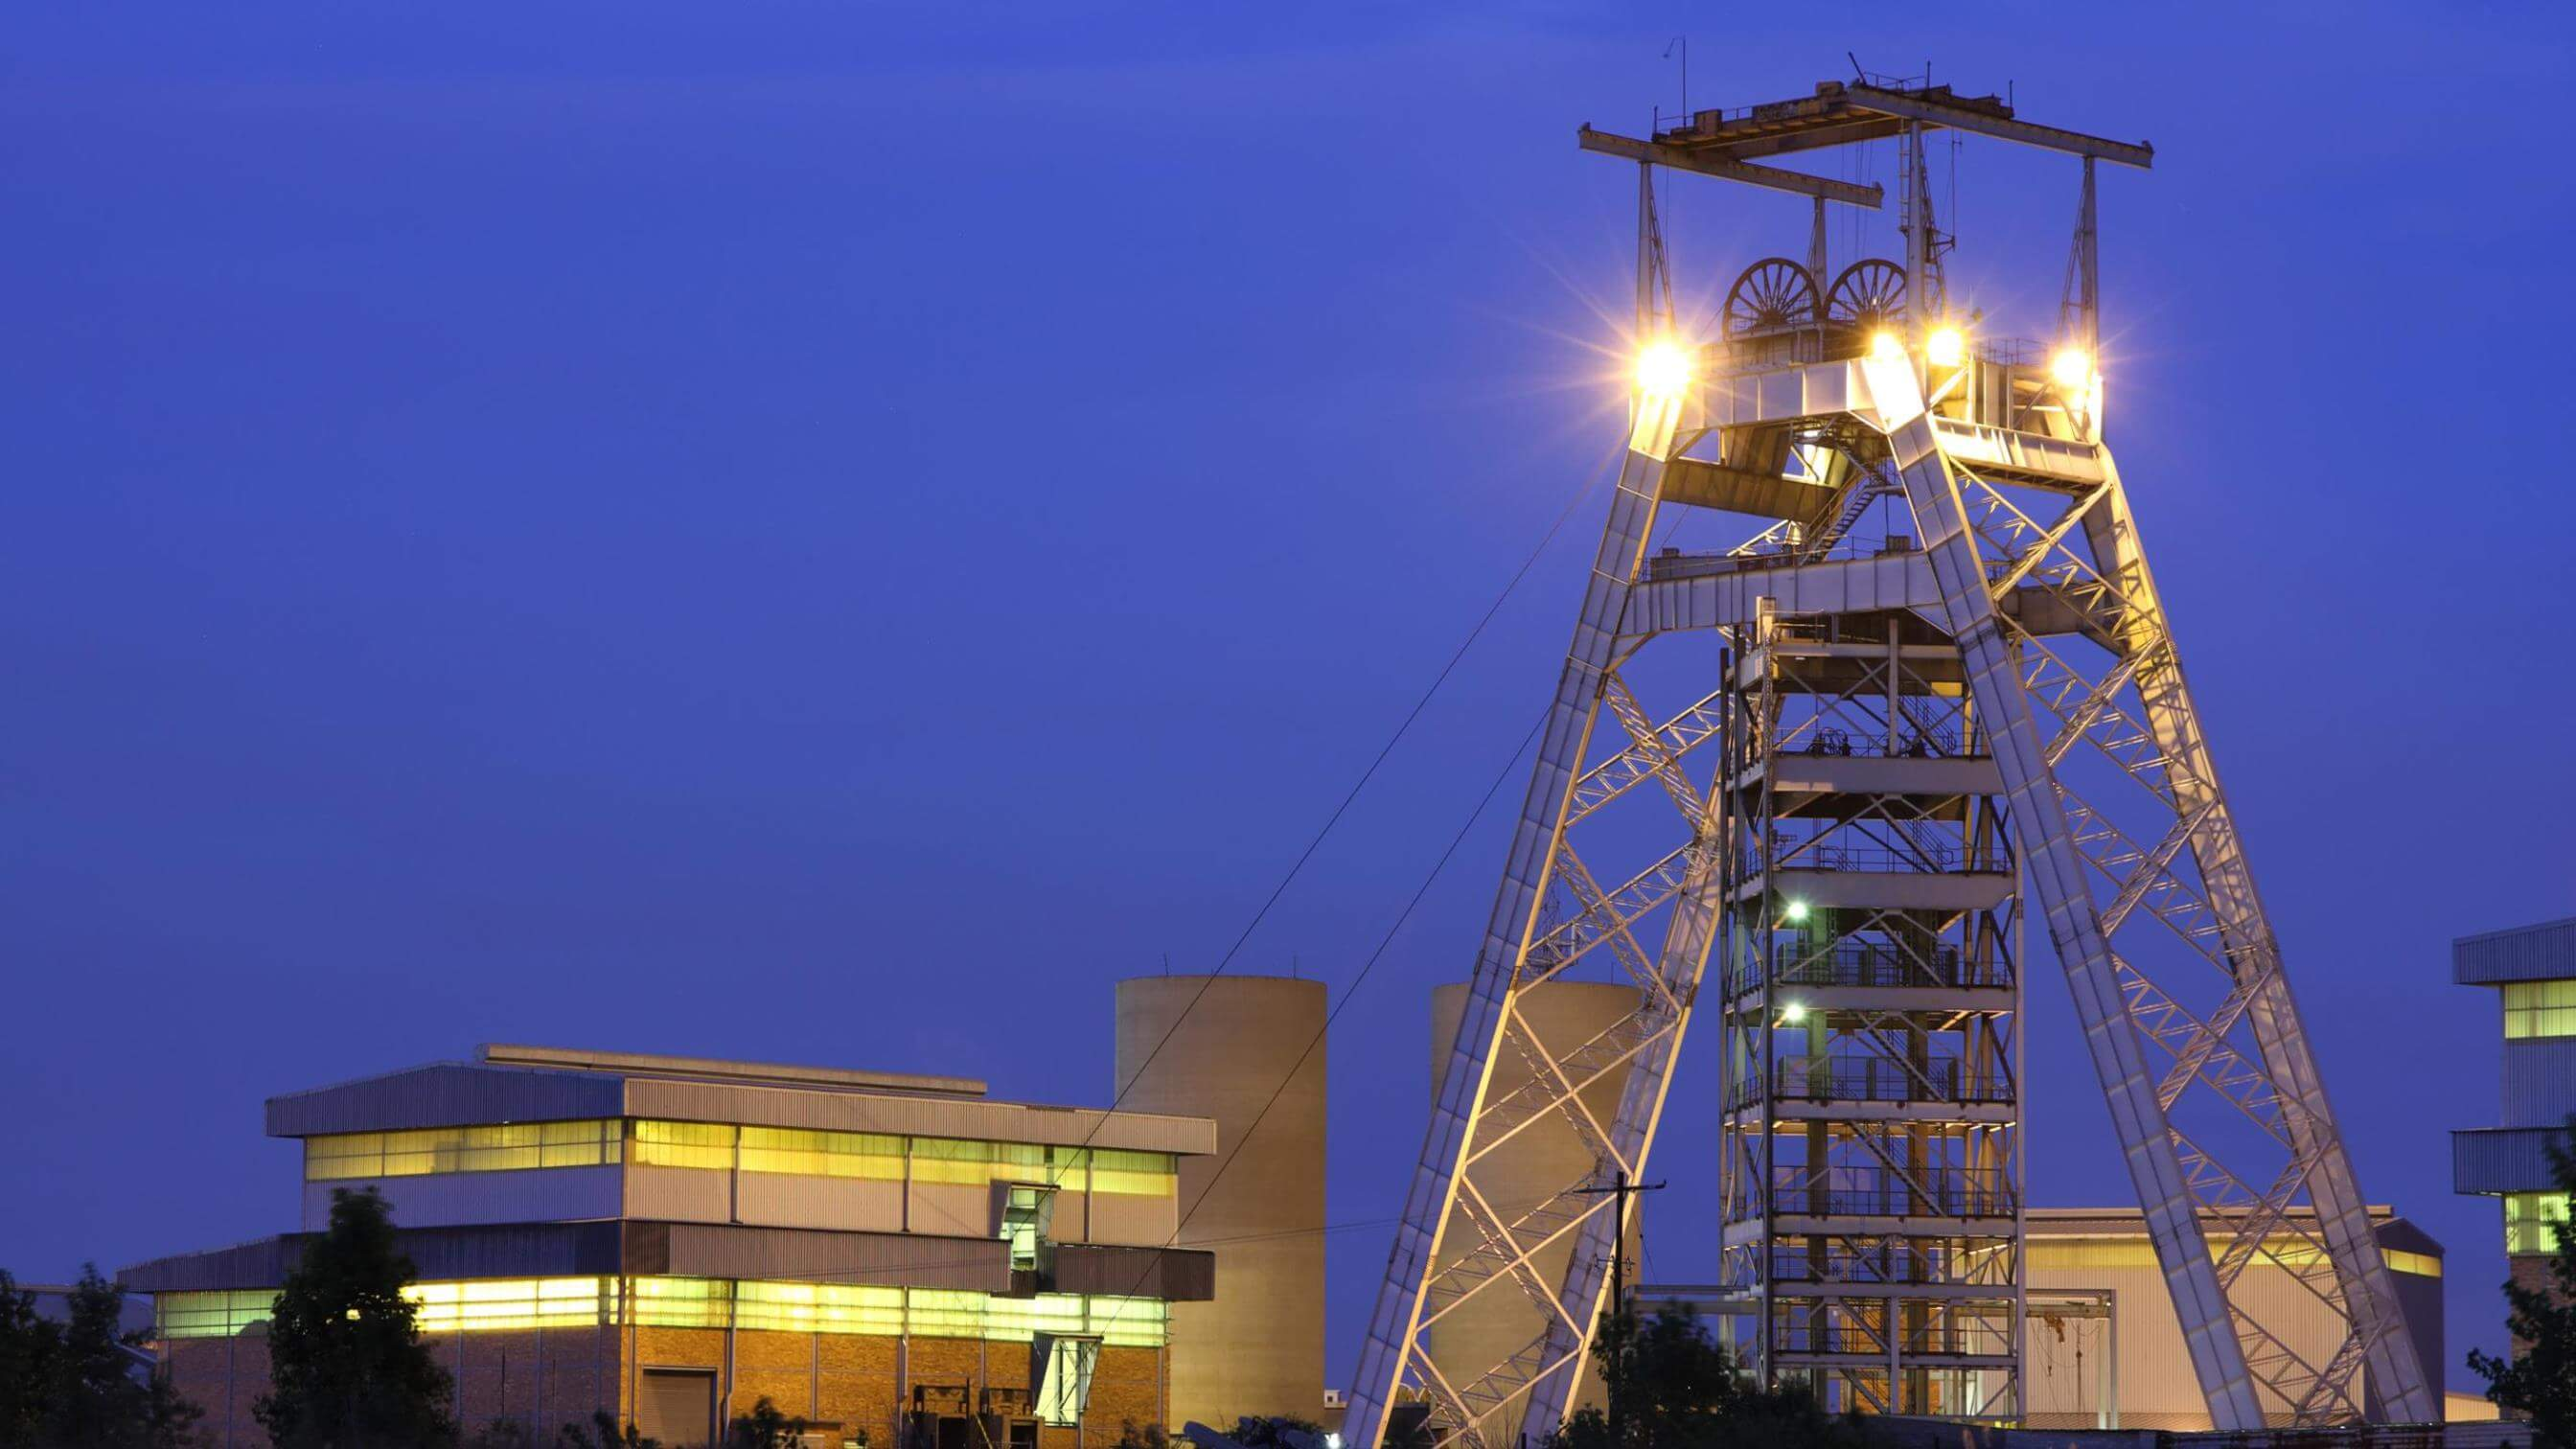 Gold mine pulley tower at night